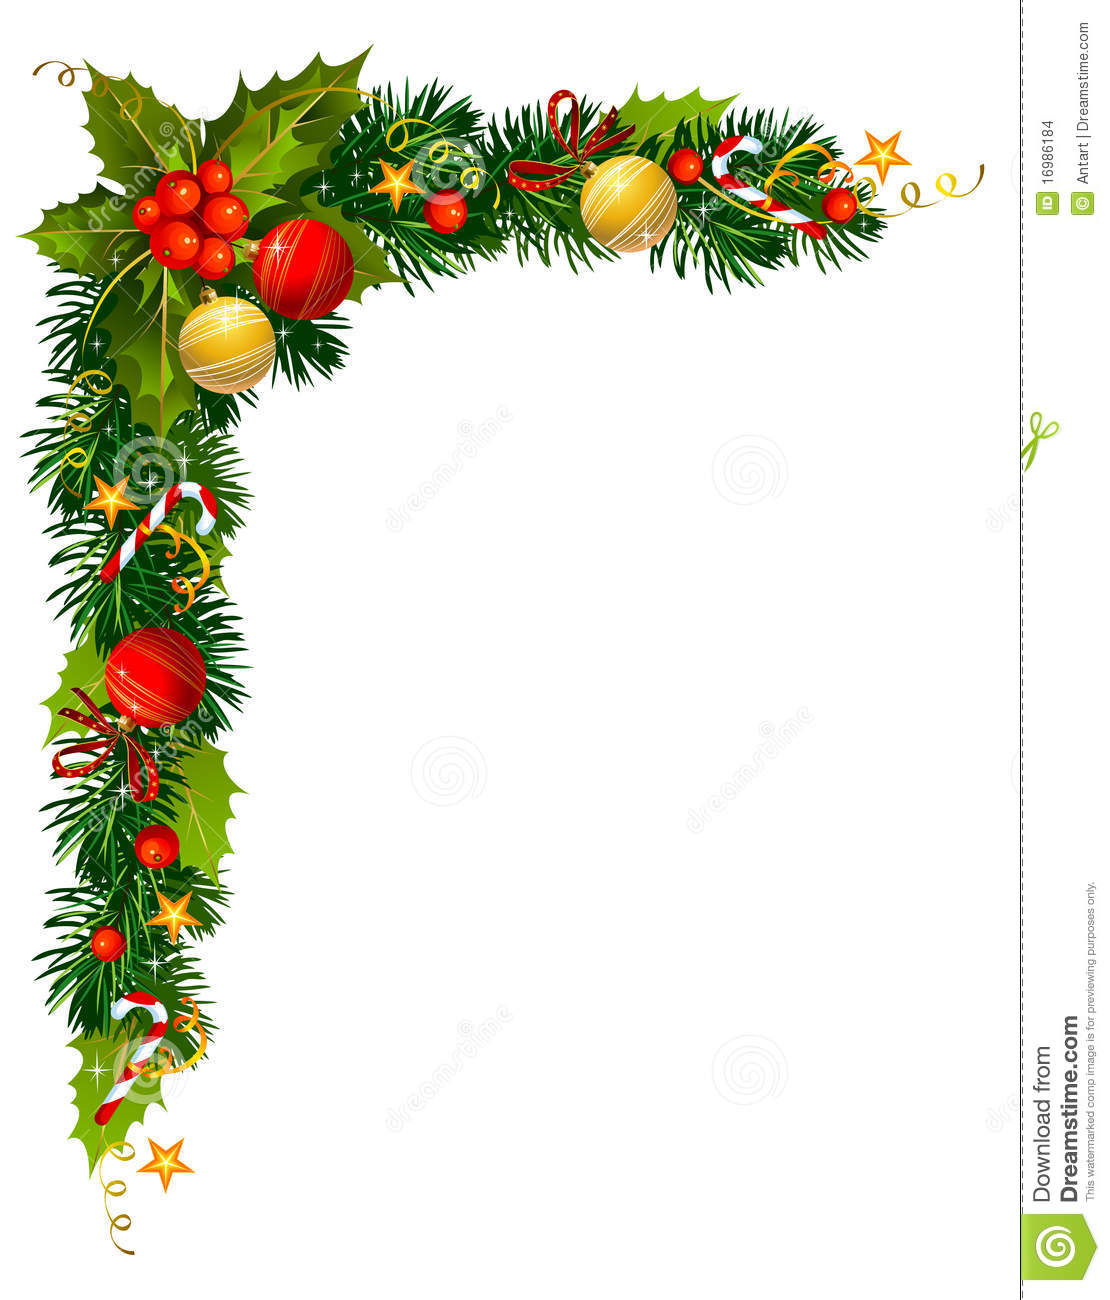 Christmas Corner Borders Clip Art Christmas Holly Branch In The